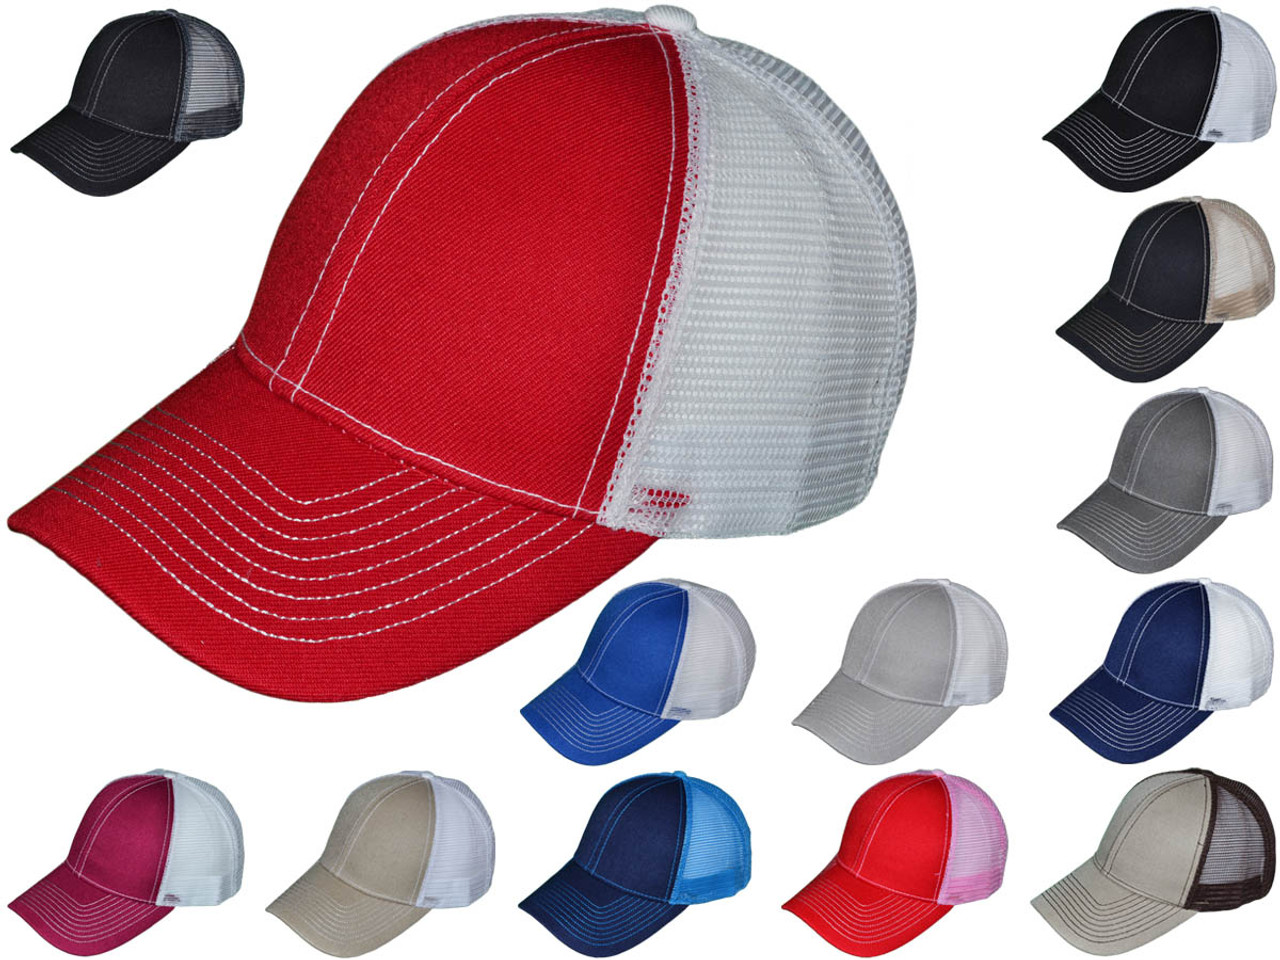 Contrast Stitching Trucker Hats - BK Caps Structured 6 Panel (13 Colors  Available) - 5249